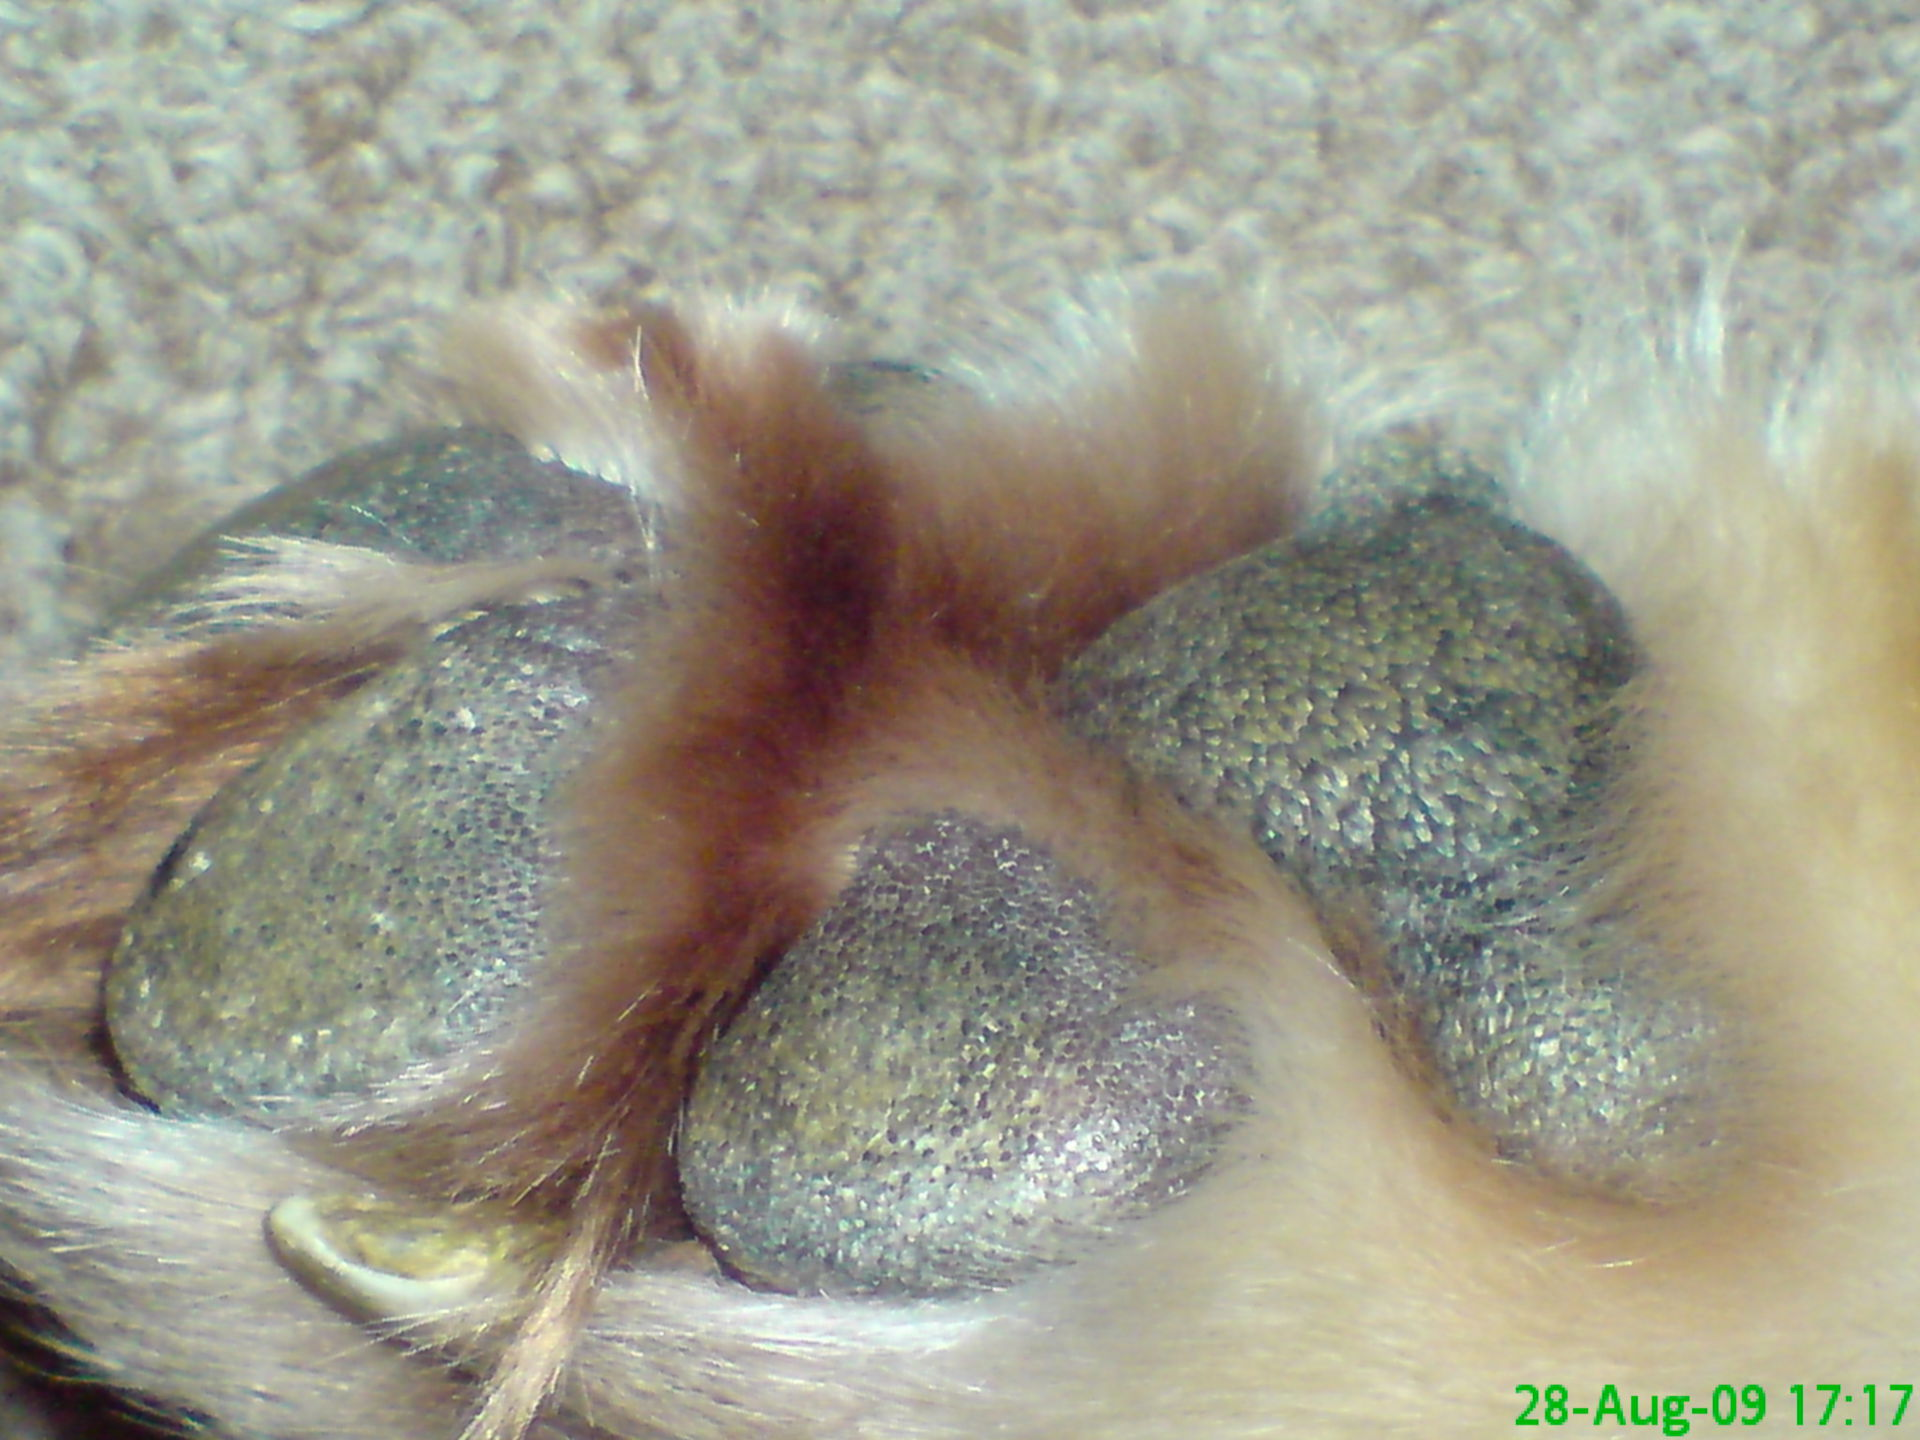 Discoloration of the balls of sole and fur - food allergy